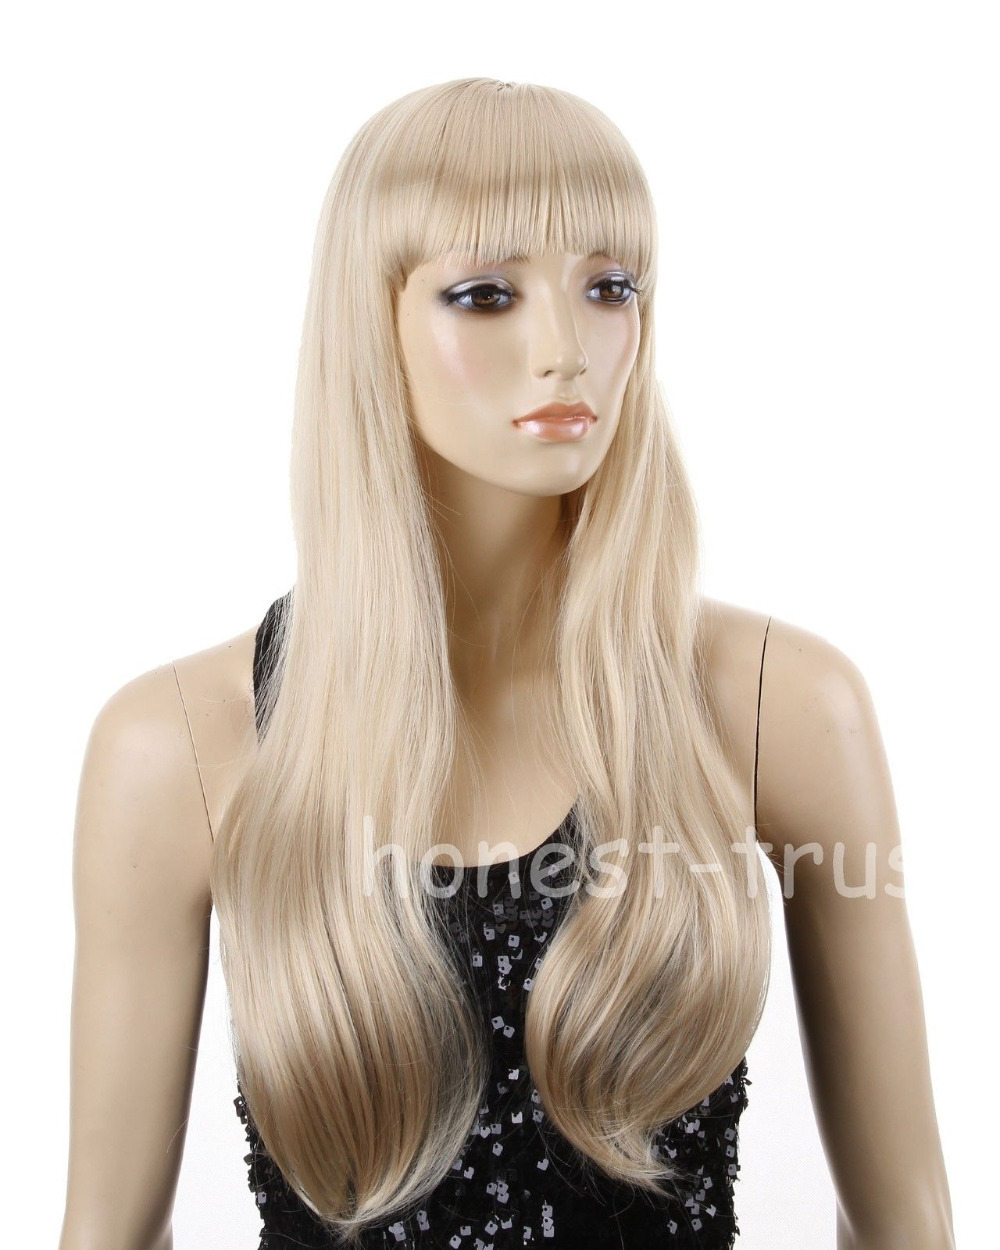 RH2208 fast shipping New Blonde Hair Long Straight Blonde Cosplay Party Wig<br><br>Aliexpress